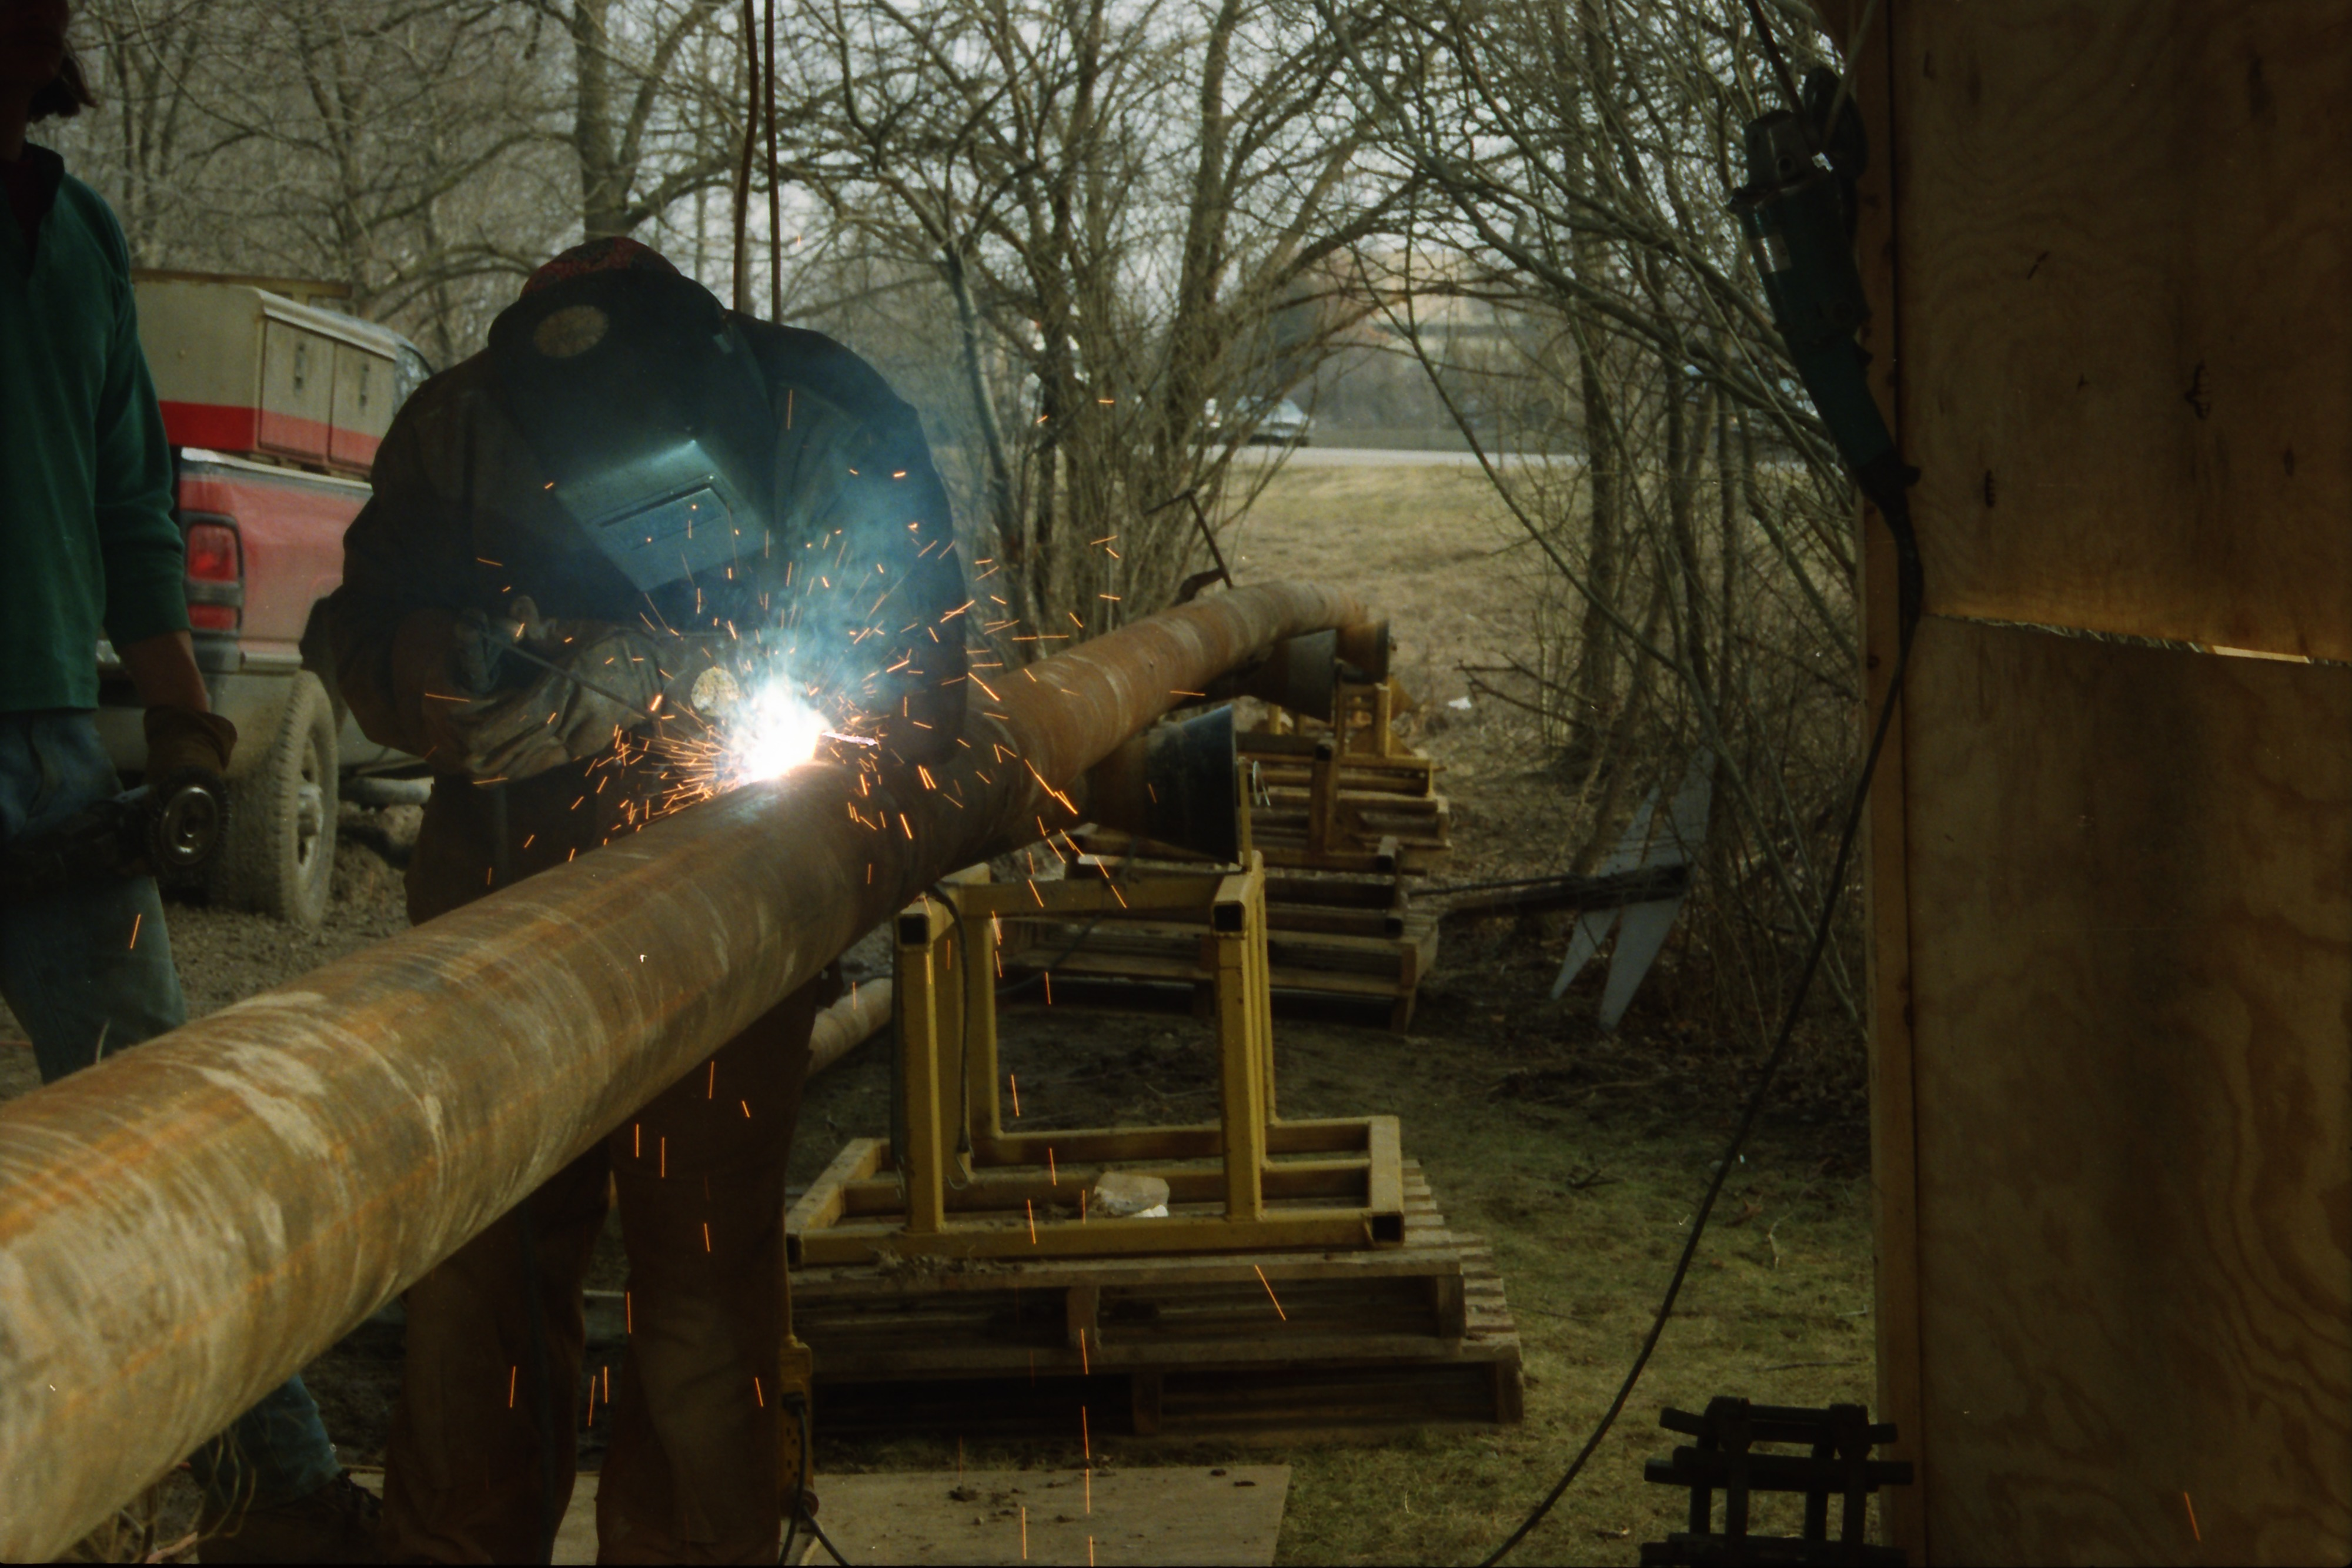 Paul Cherry Welding a Pipeline for Pall Gelman Sciences, Inc. image